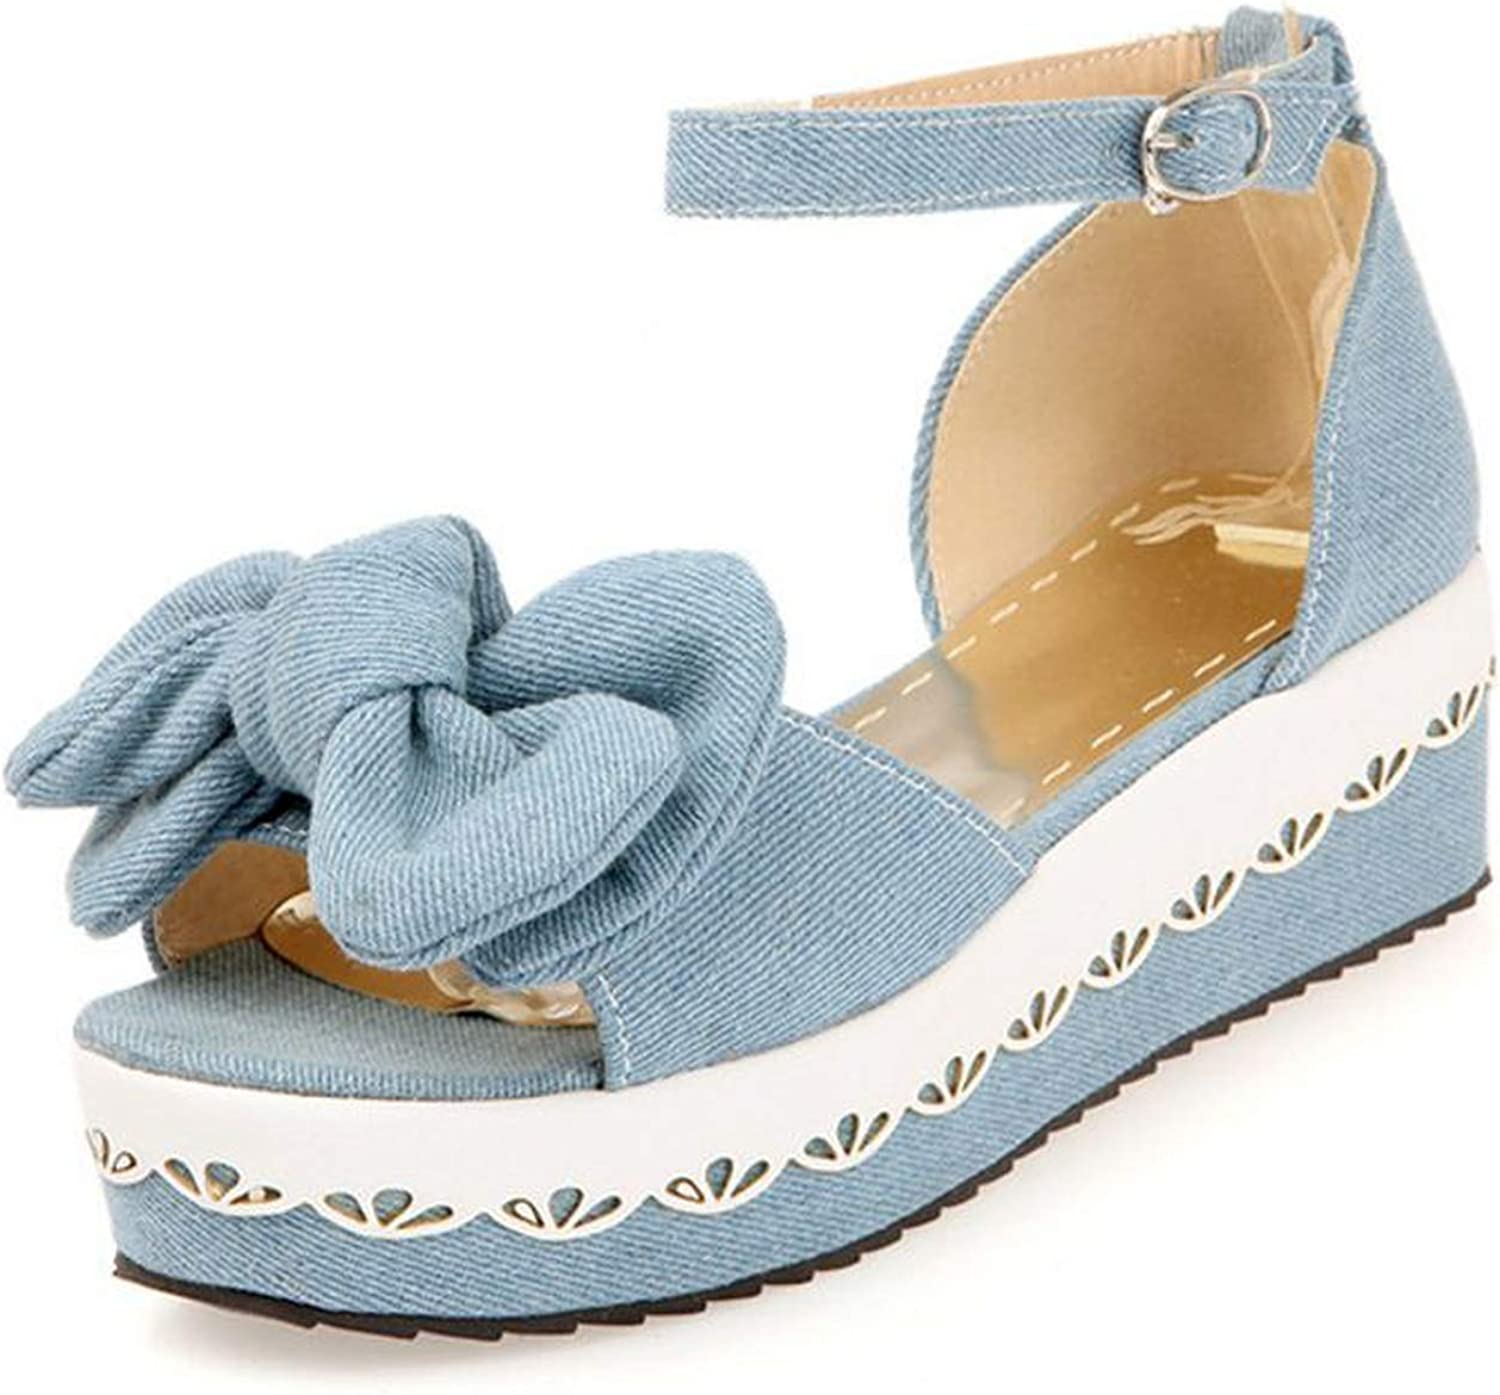 QianQianStore High Heel Sandals Open Toe Ankle Strap Bowknot Ladies Summer shoes Ruffles Fashion for shoes